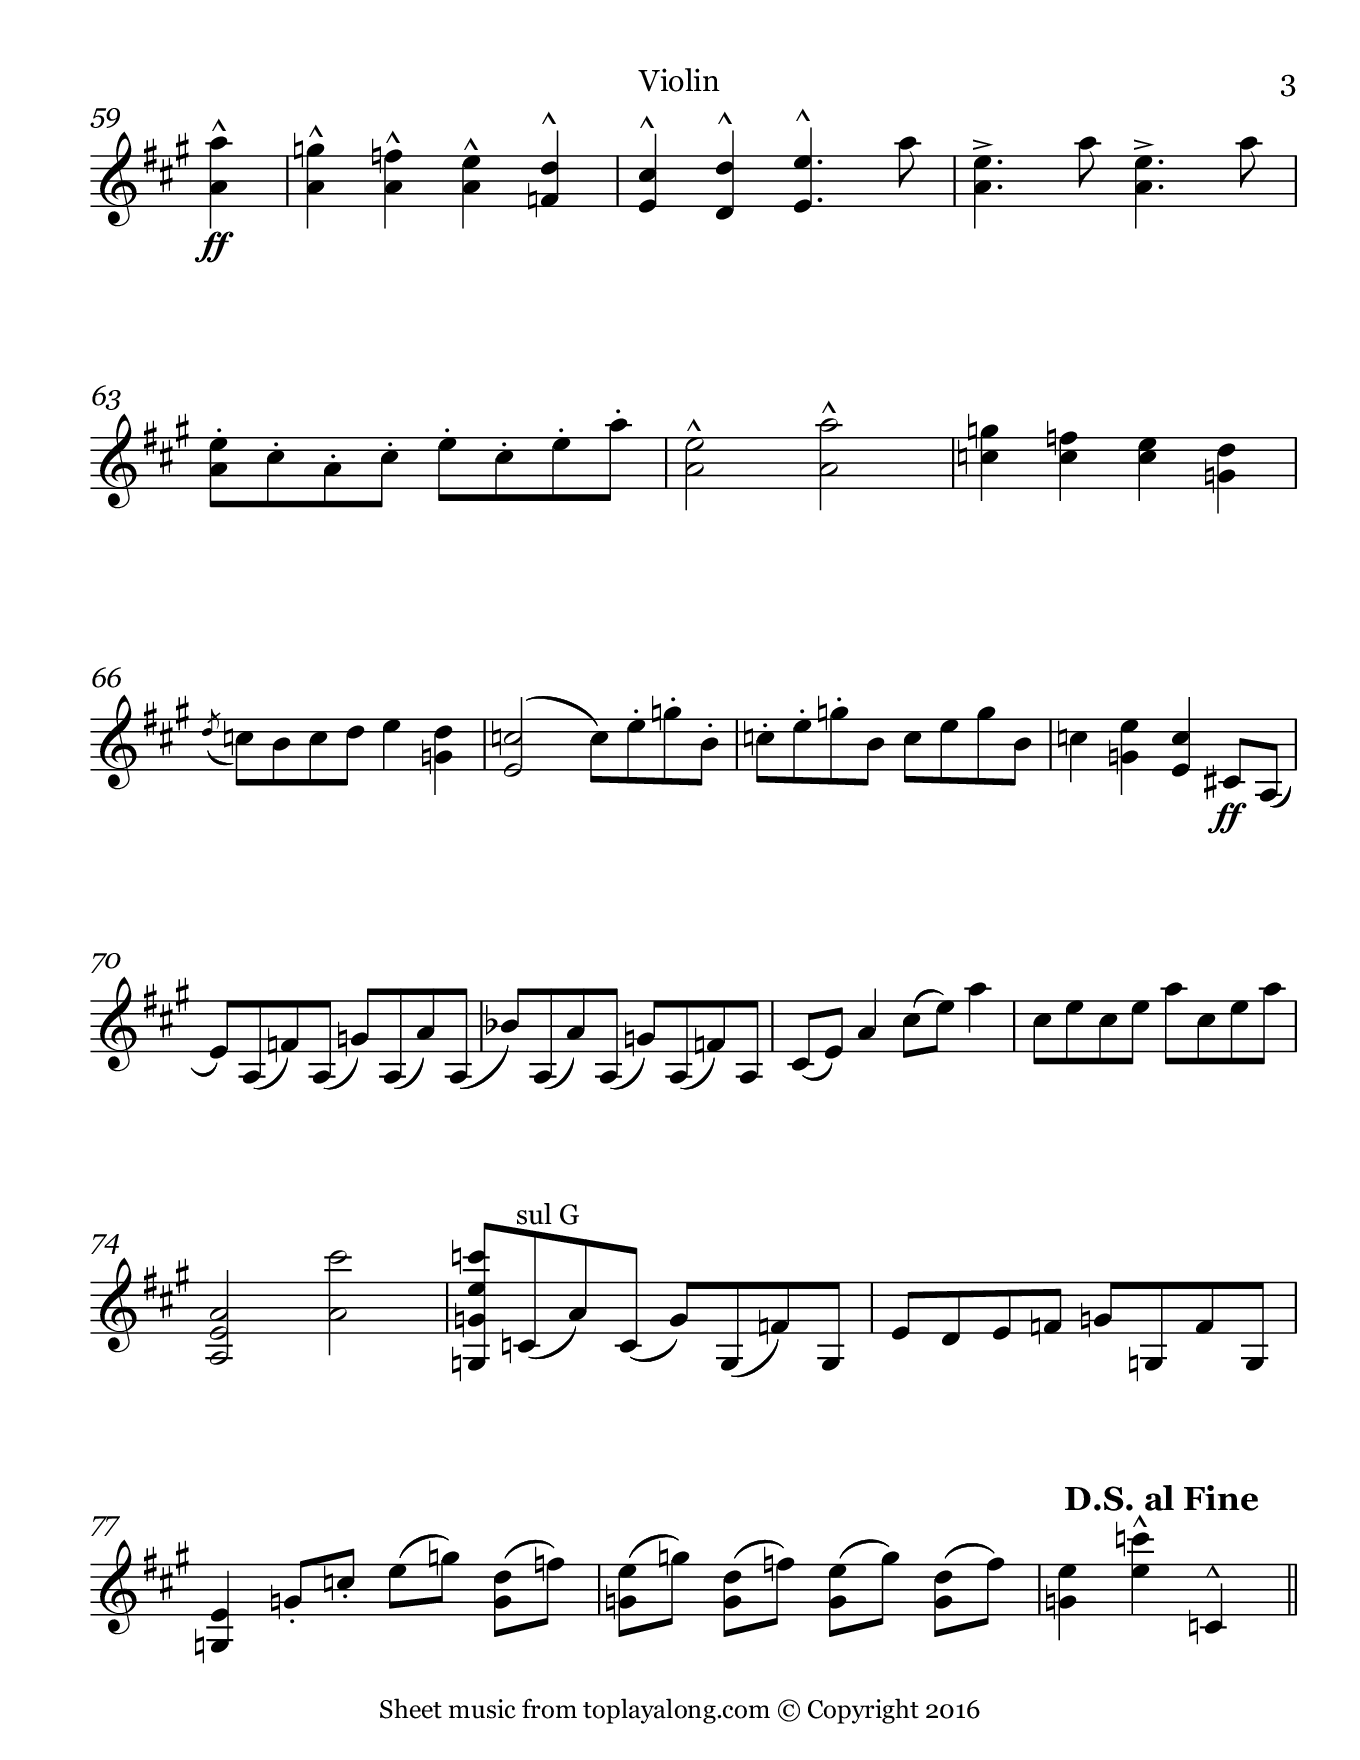 Hungarian March from Faust by Berlioz. Sheet music for Violin, page 3.